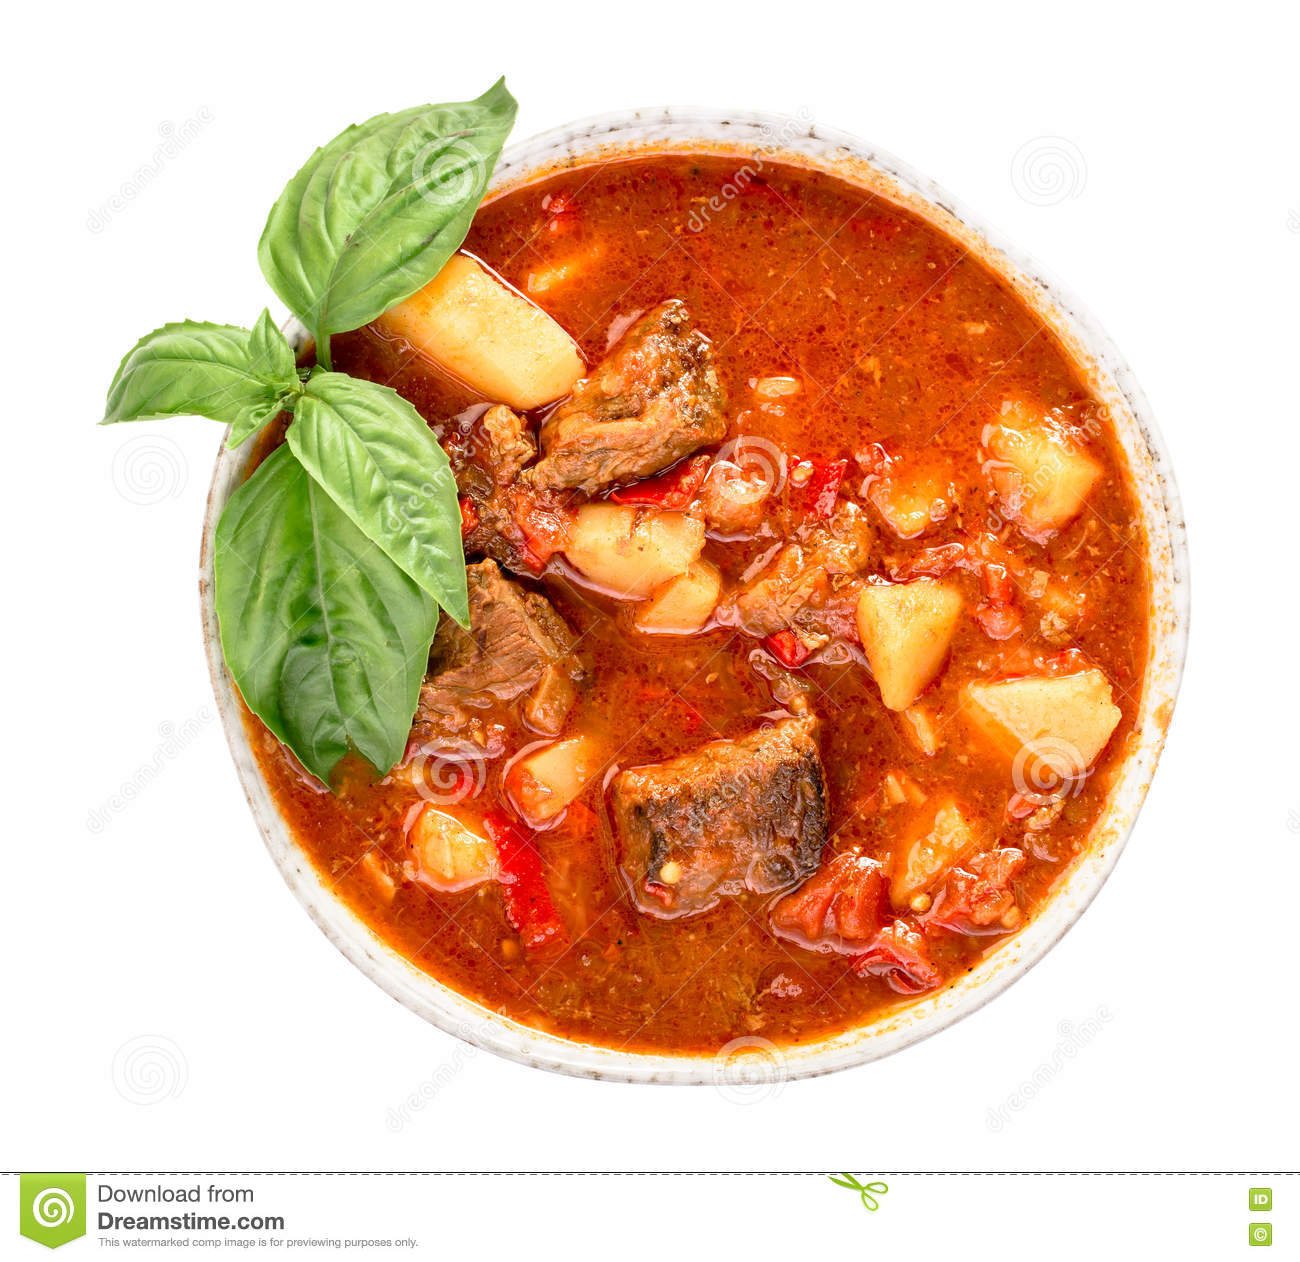 Hungarian goulash top view isolated